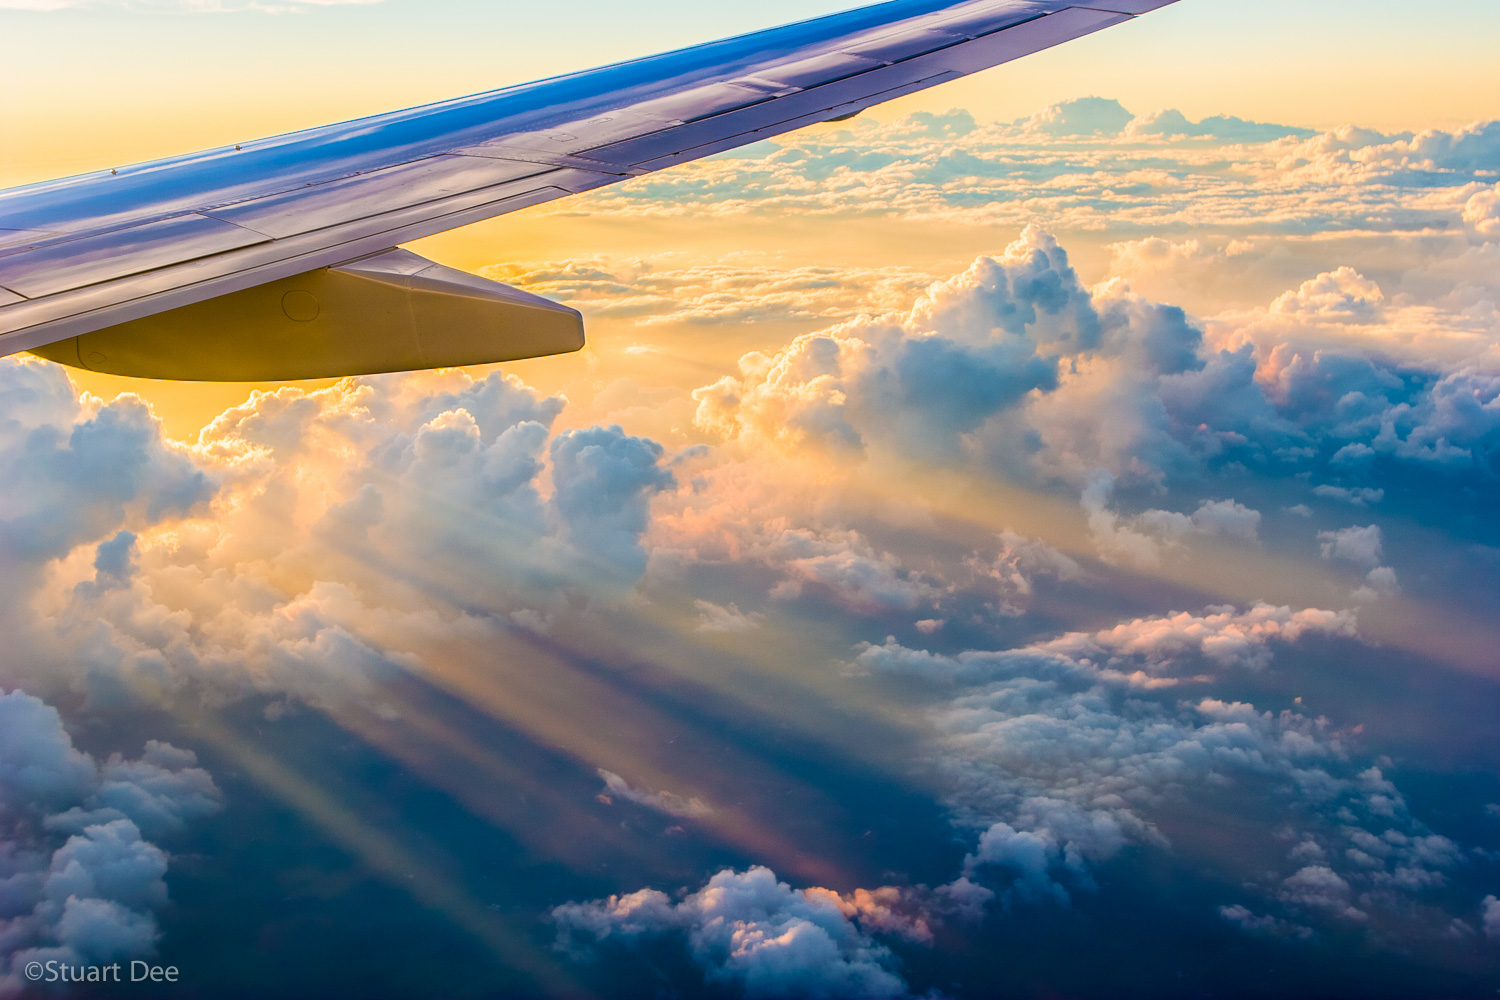 Airplane wing against dramatic clouds with sun's rays